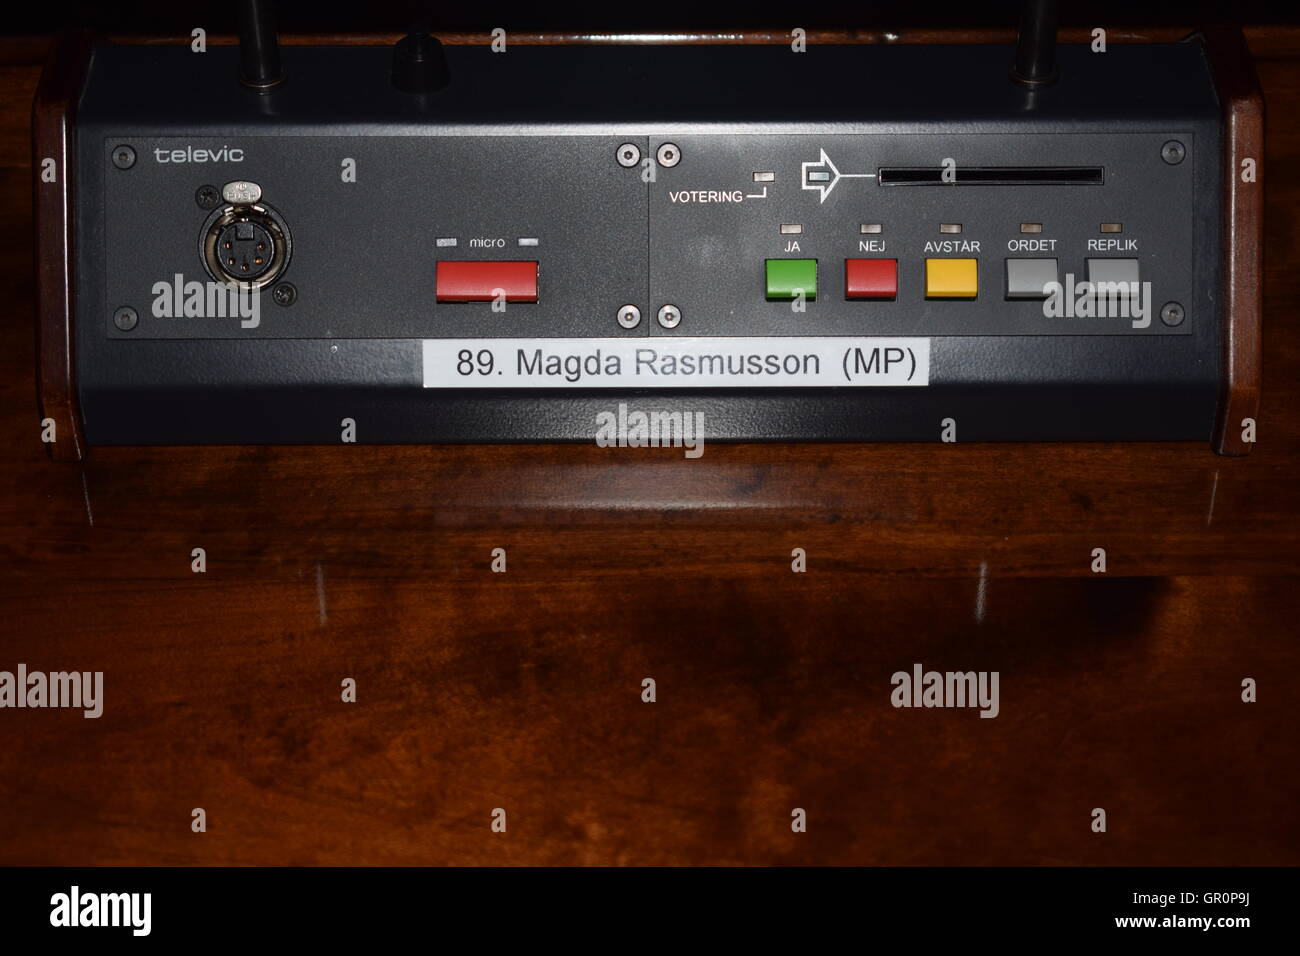 Electronic voting device in Stadhuset, Stockholm - Stock Image